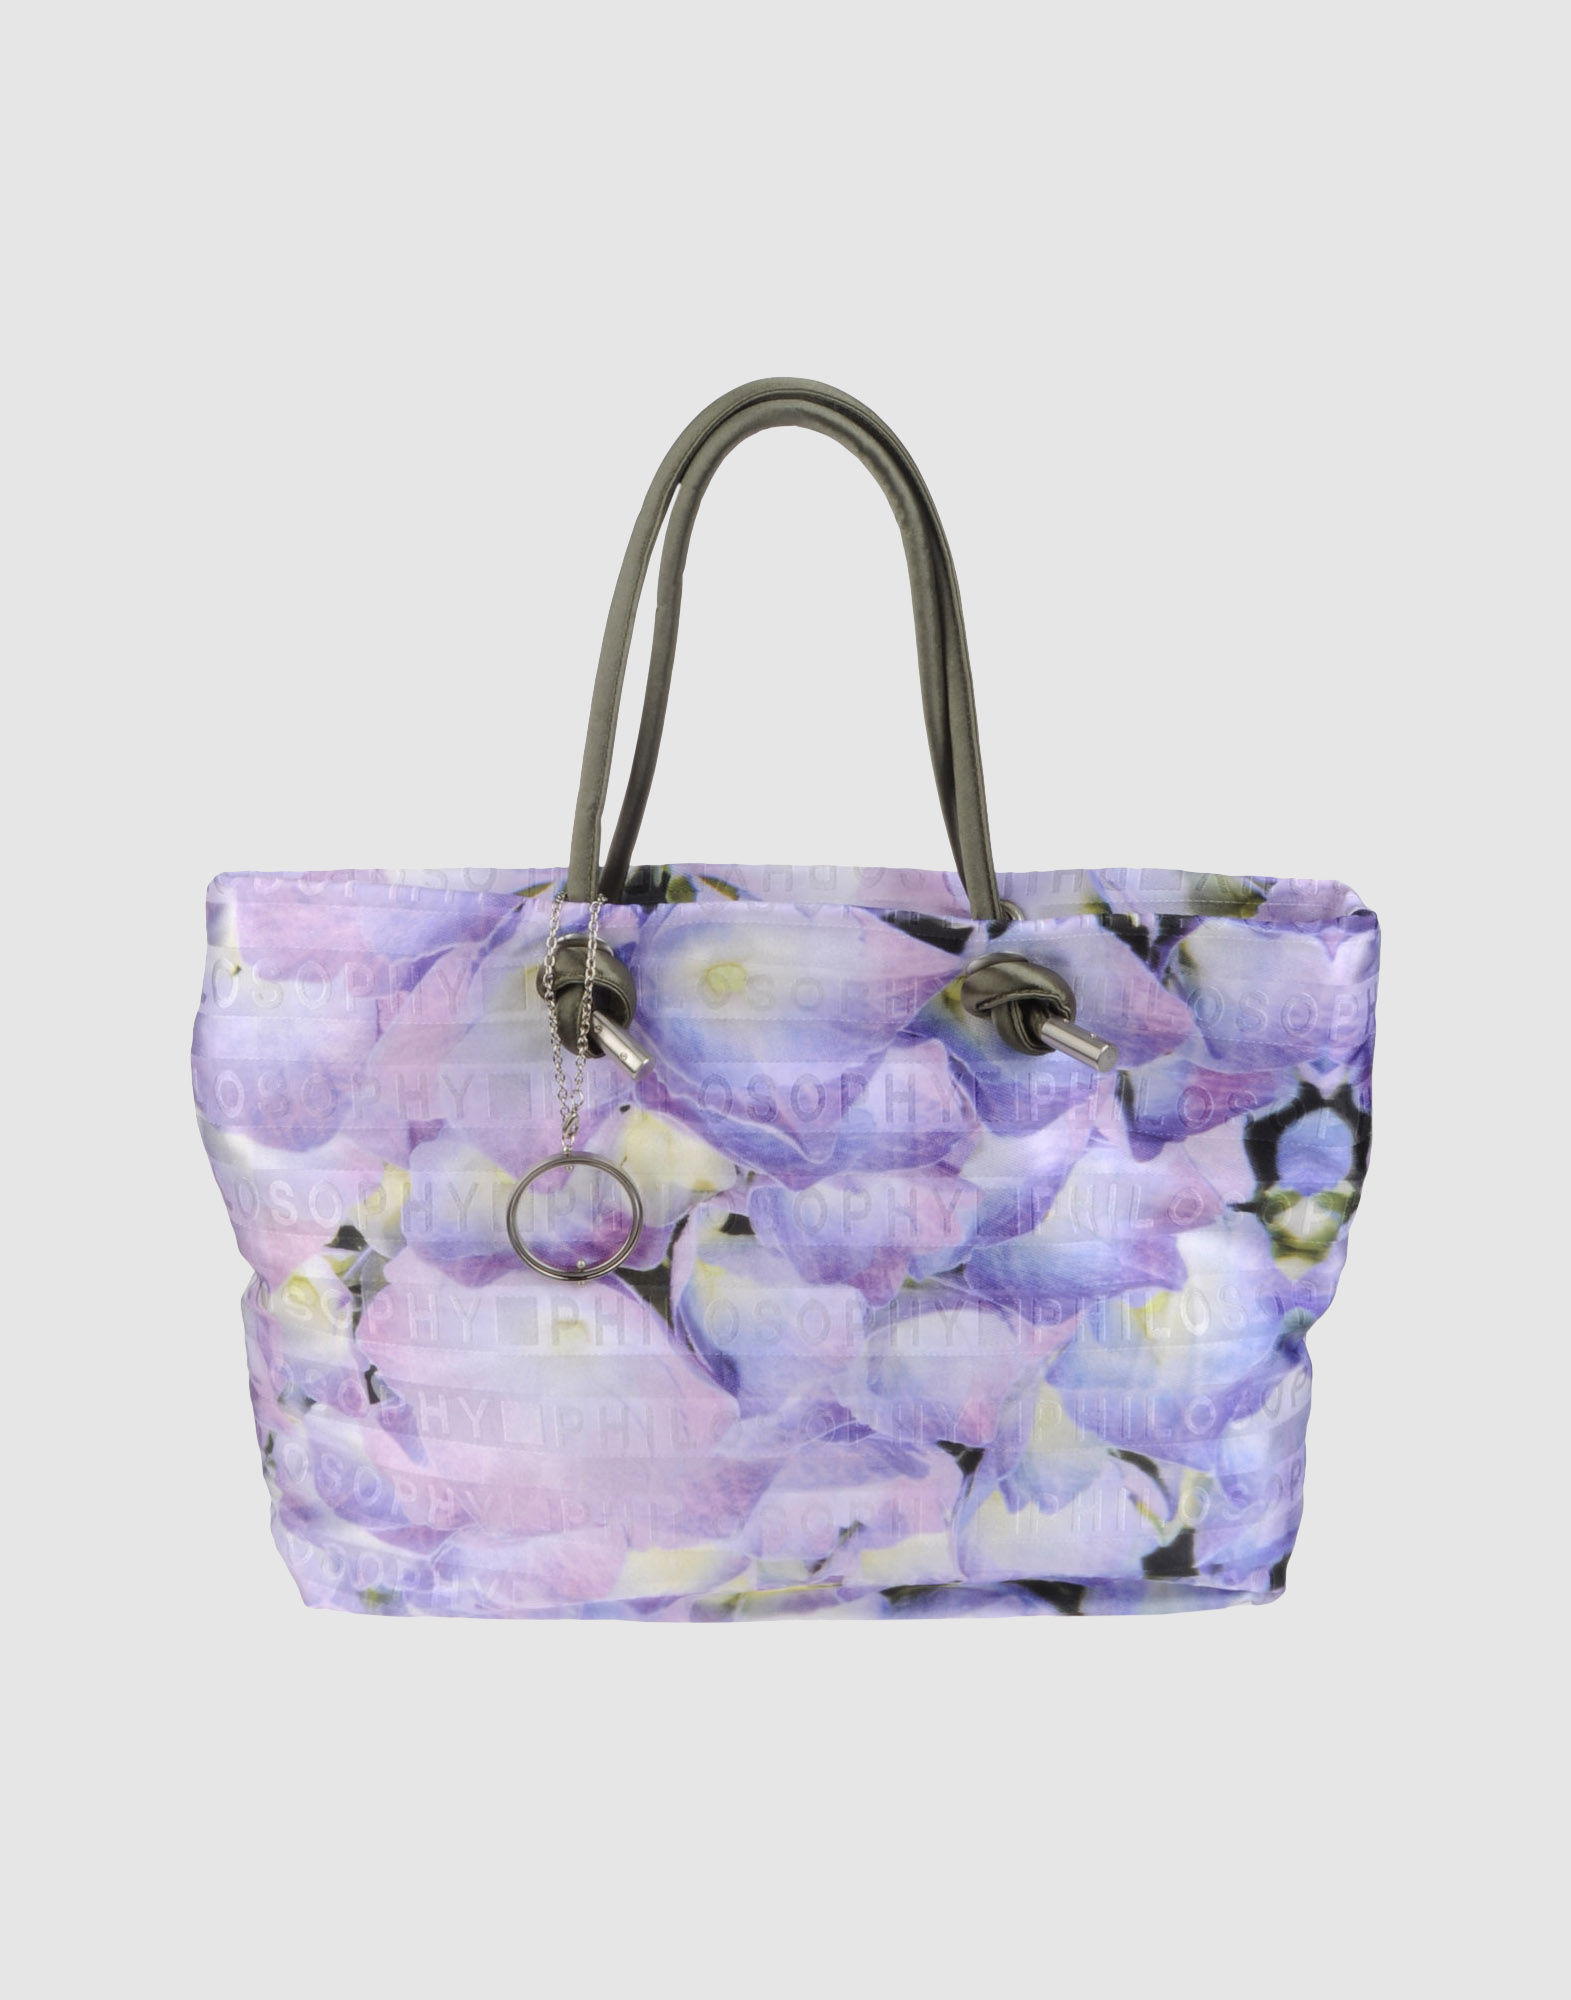 Lyst - Philosophy di Alberta Ferretti Large Fabric Bag in Purple 9379ff75e889f